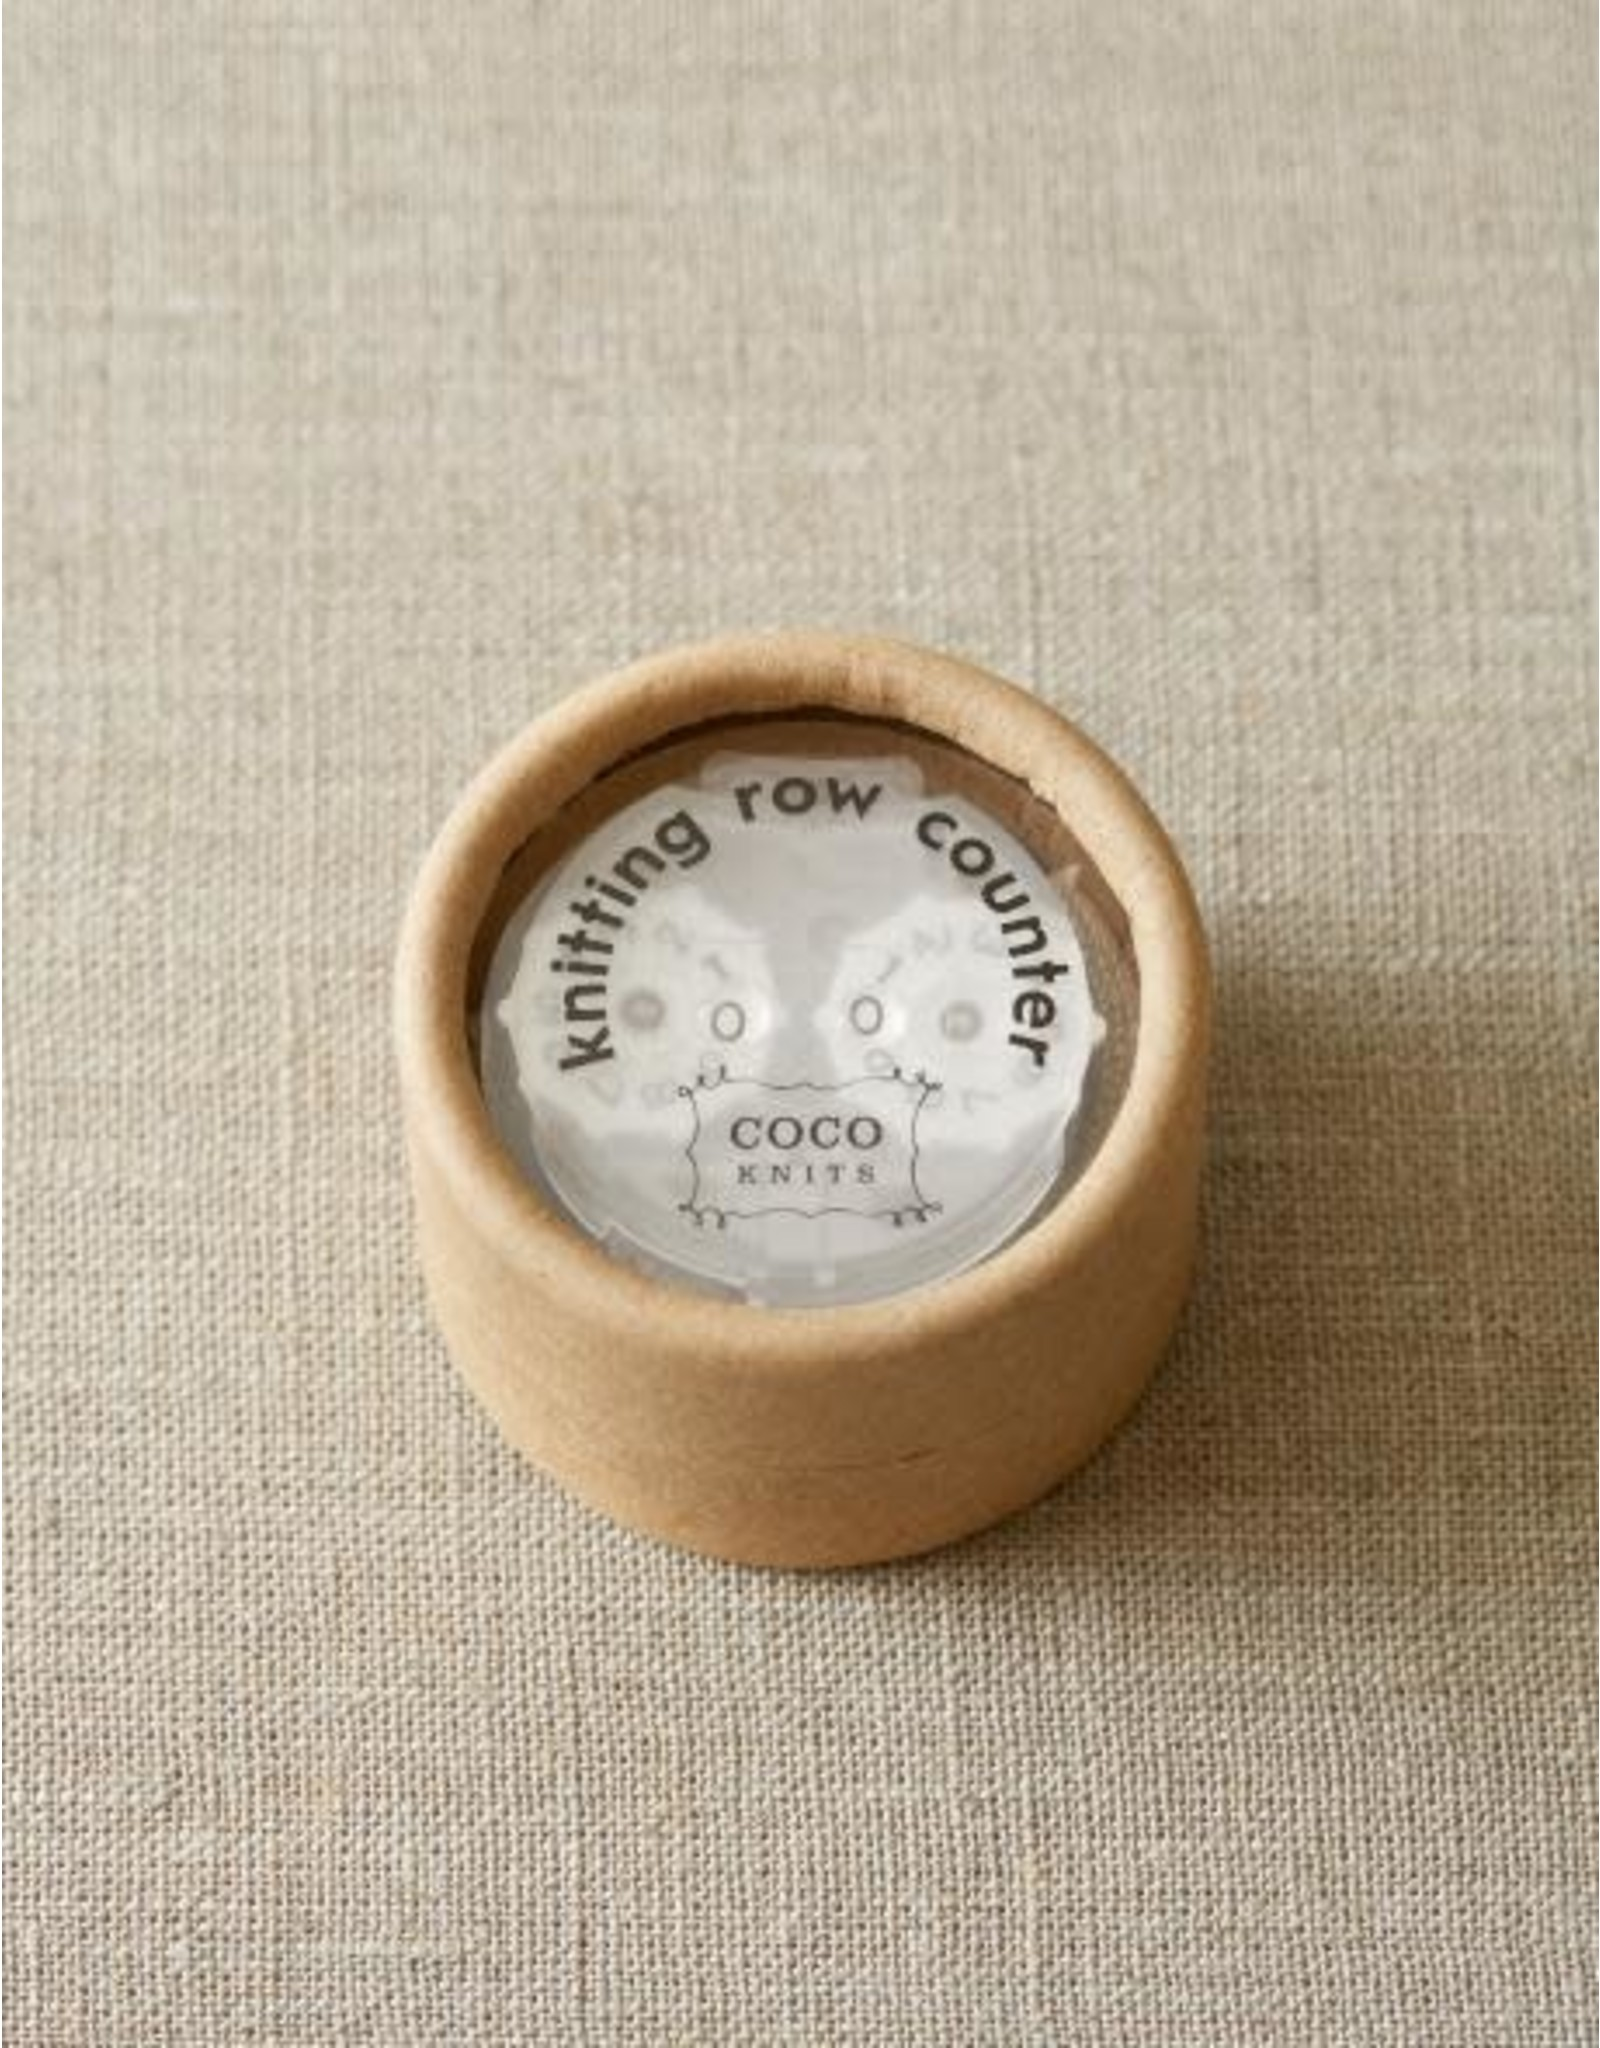 Row Counter by Cocoknits